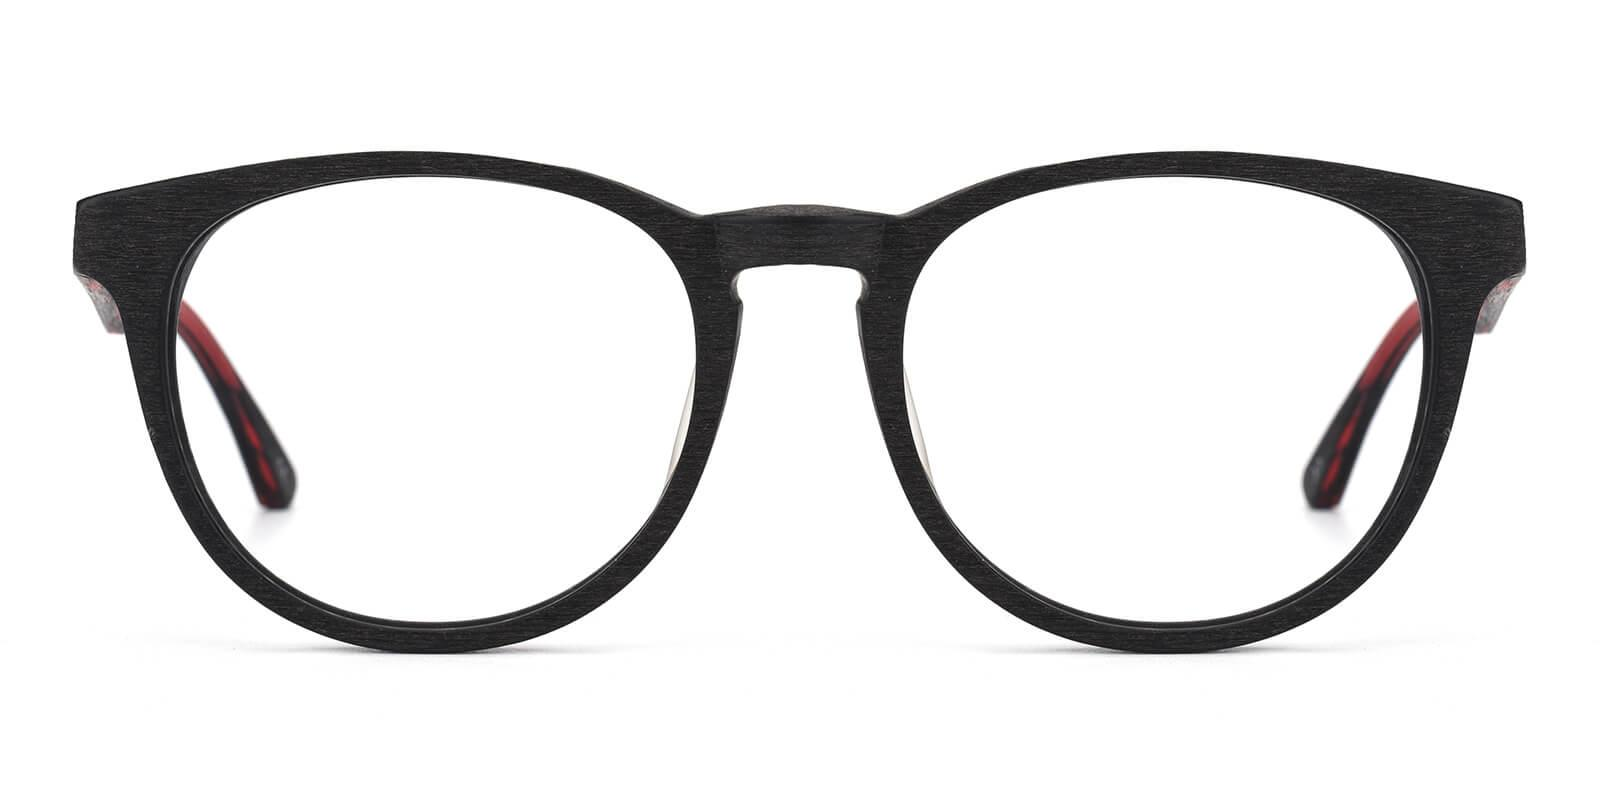 Rechela-Red-Round-Acetate-Eyeglasses-additional2